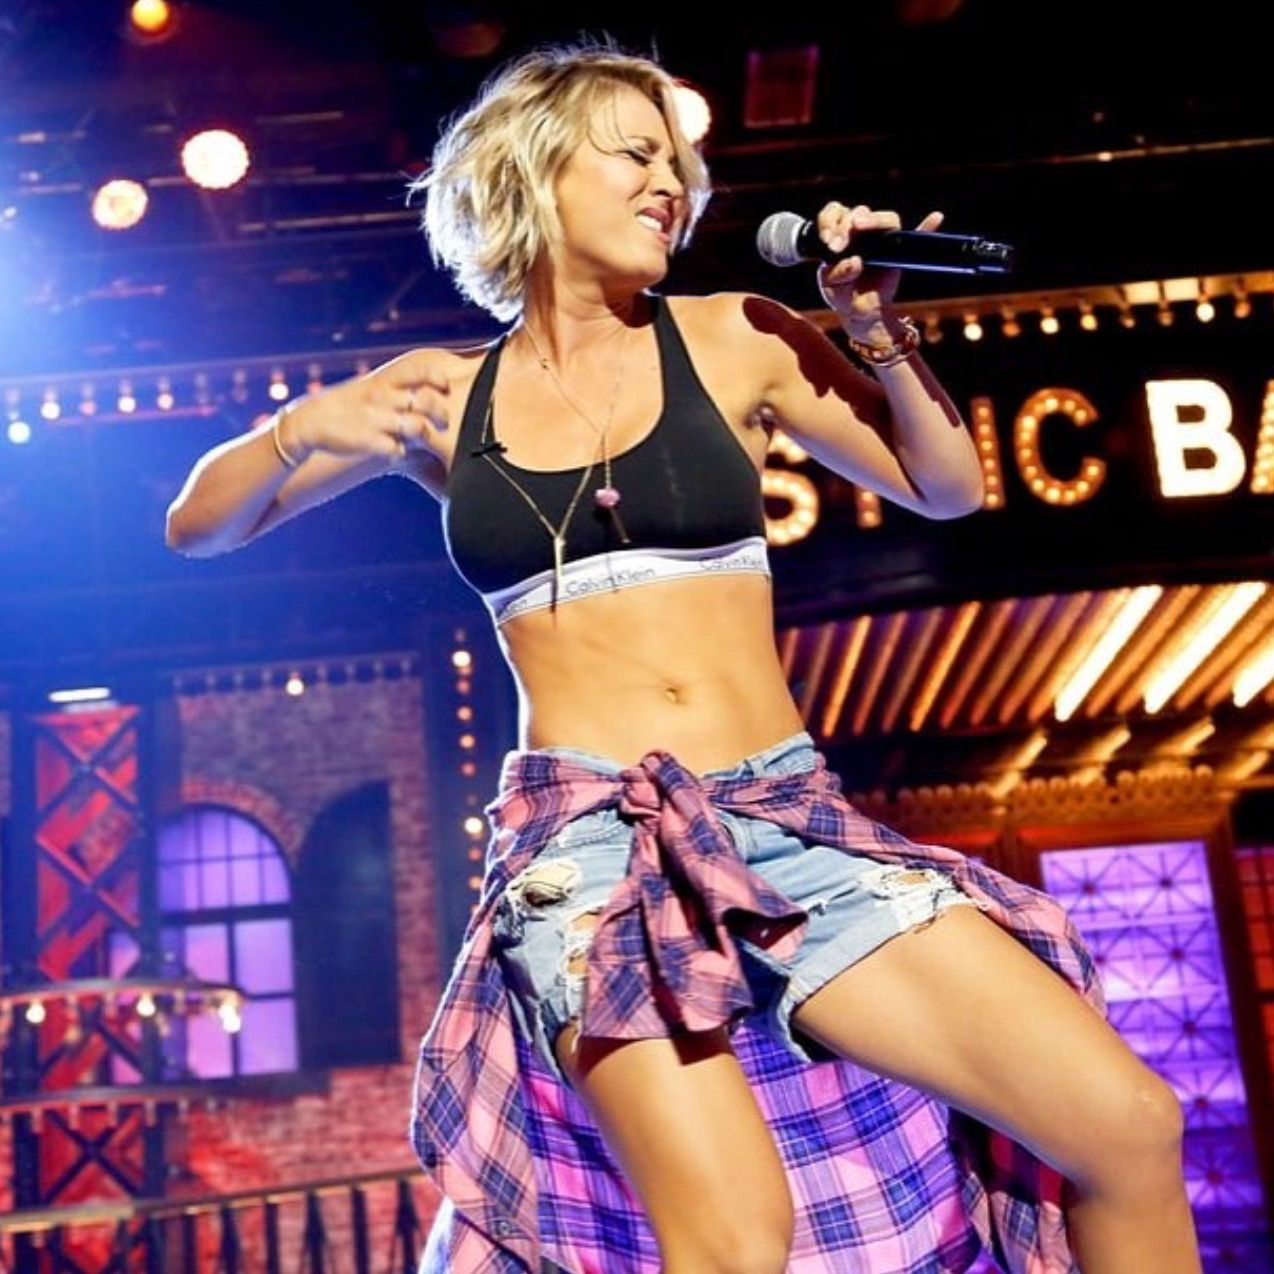 Pin by Jan Häll on Kaley Cuoco | Kaley cuoco, Lip sync battle, Lip sync